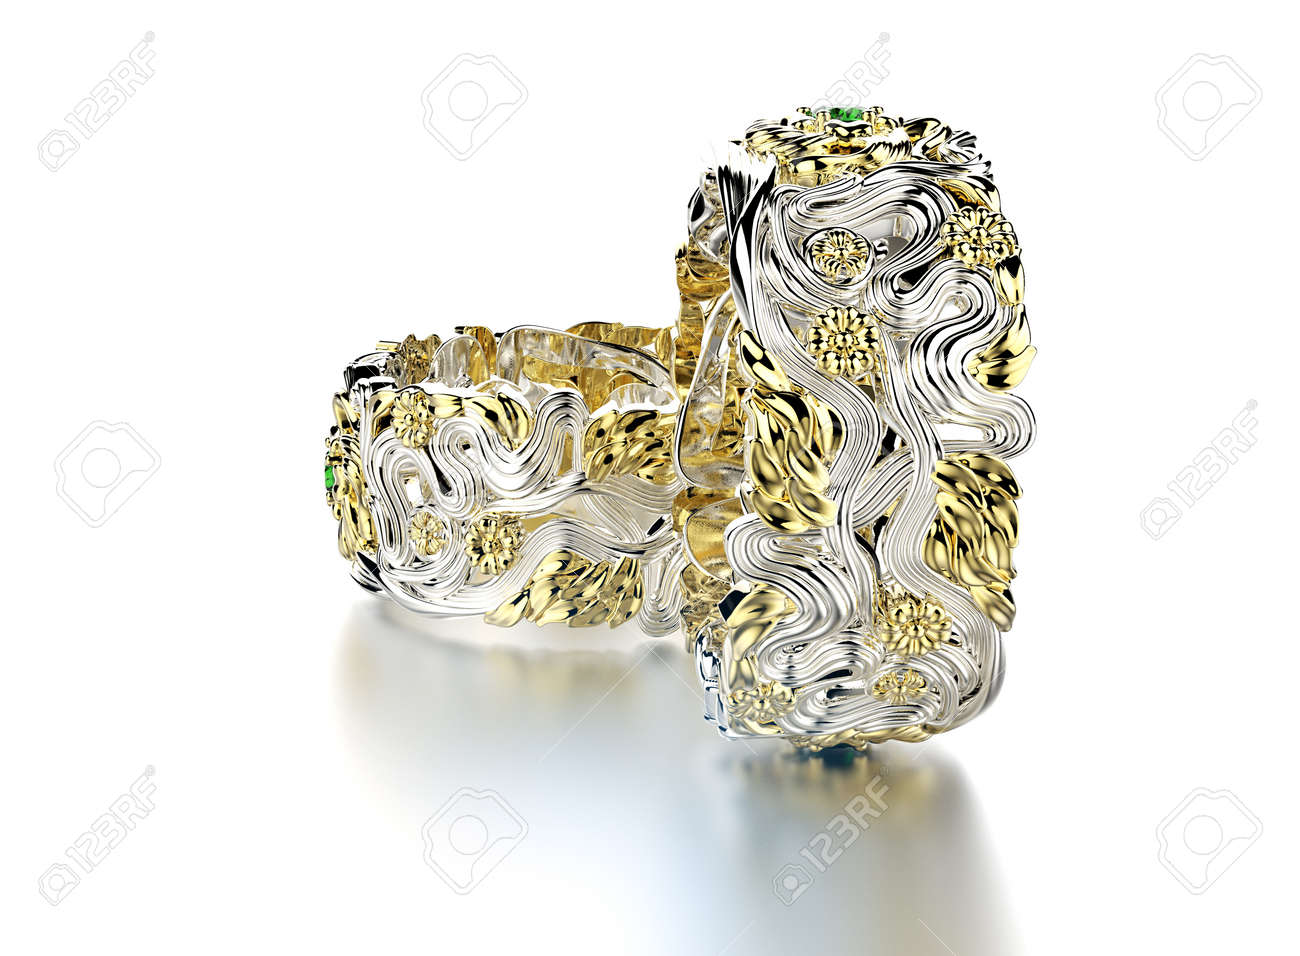 wedding realistic video rings engagement hd footage stock golden animation